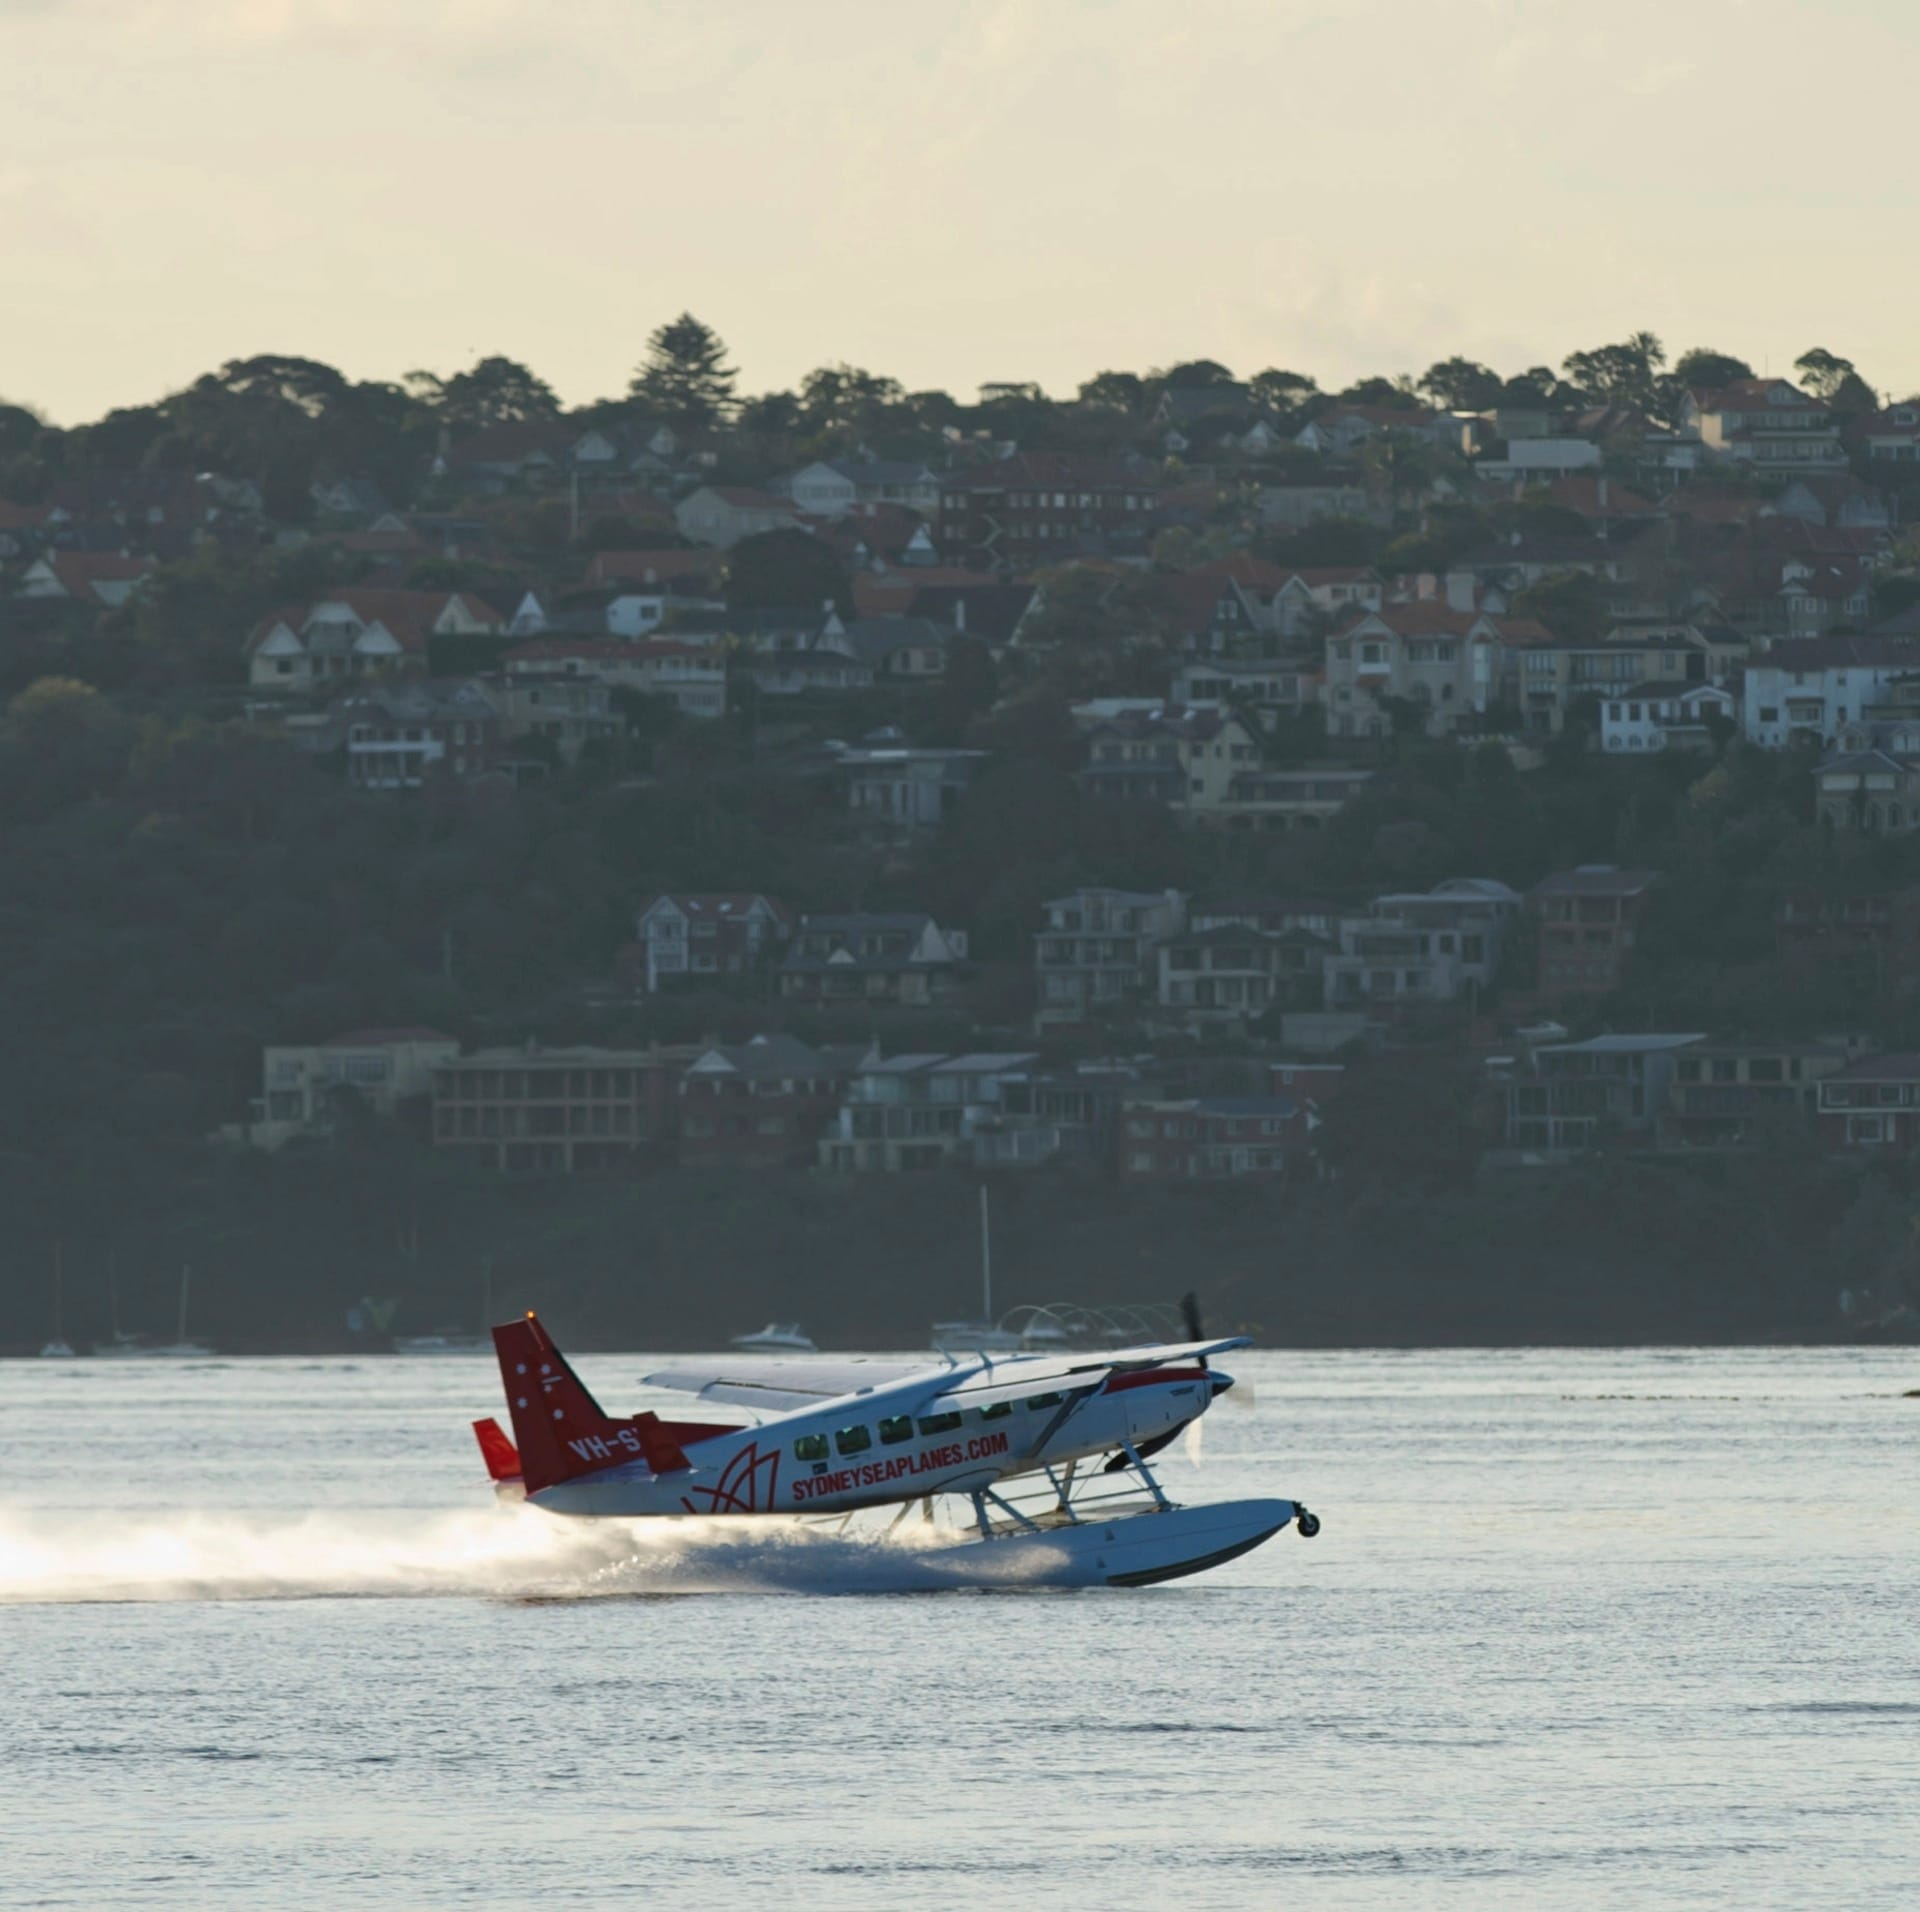 Sydney Seaplanes flight taking off in Sydney Harbour © Tourism Australia